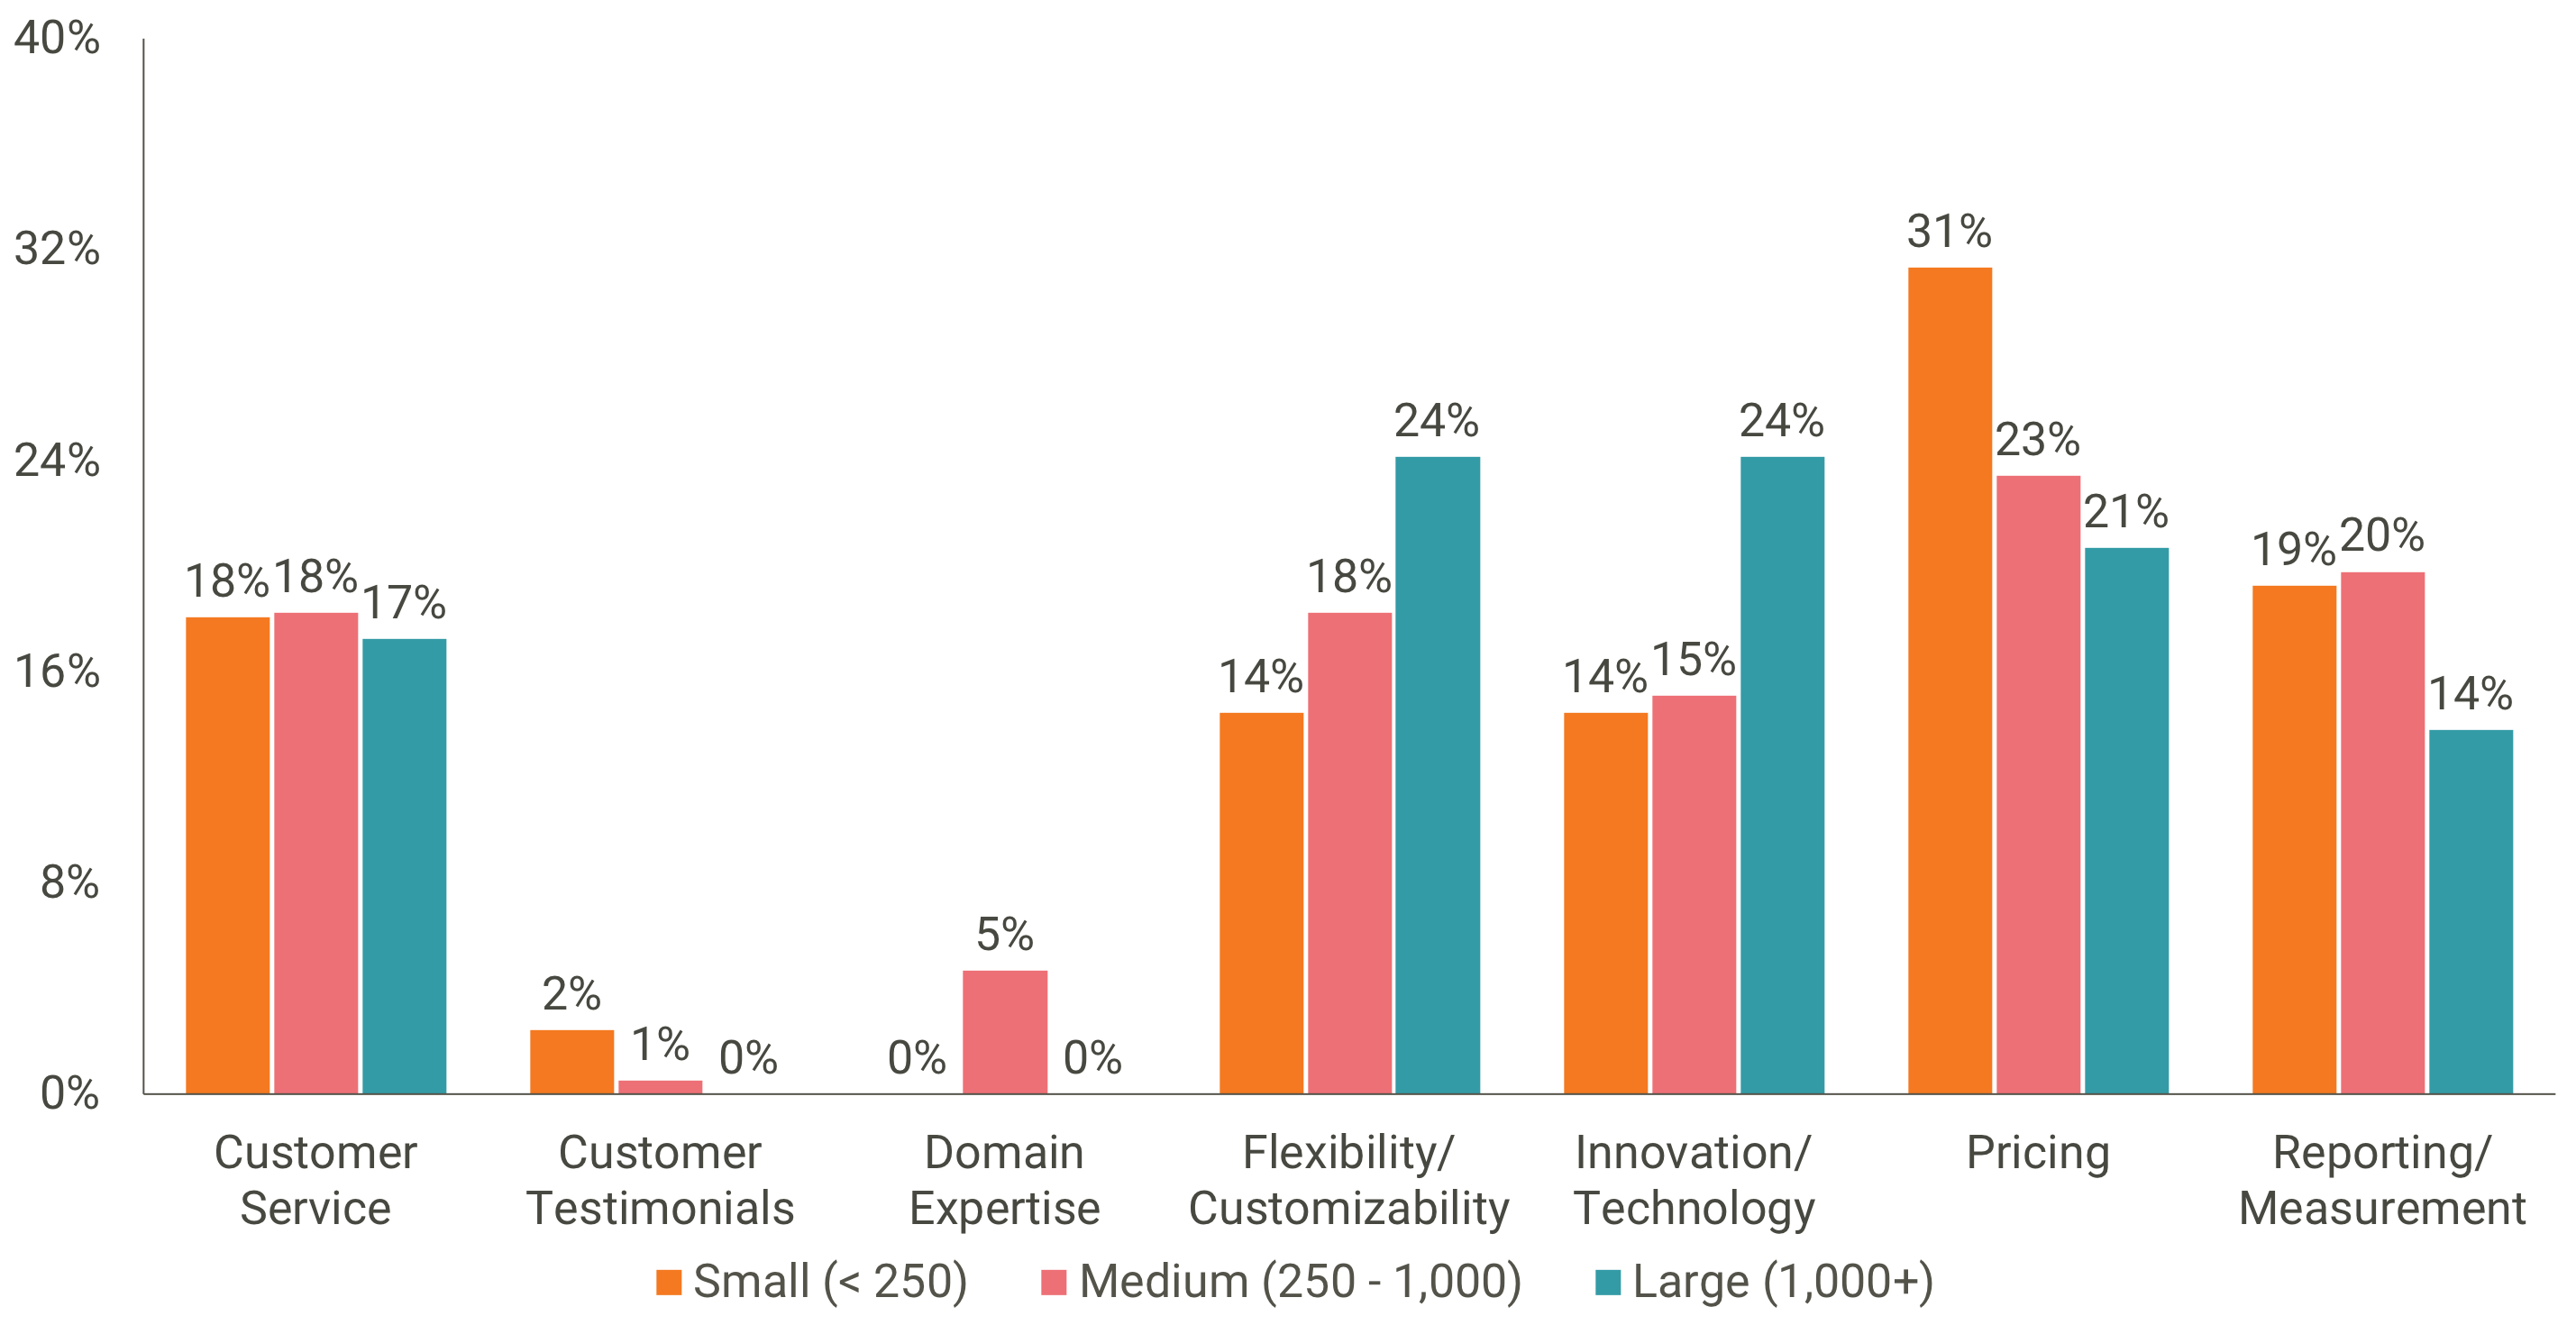 18 0319 2018 Wellness Industry Trends - Vendor Evaluation (by Size).png